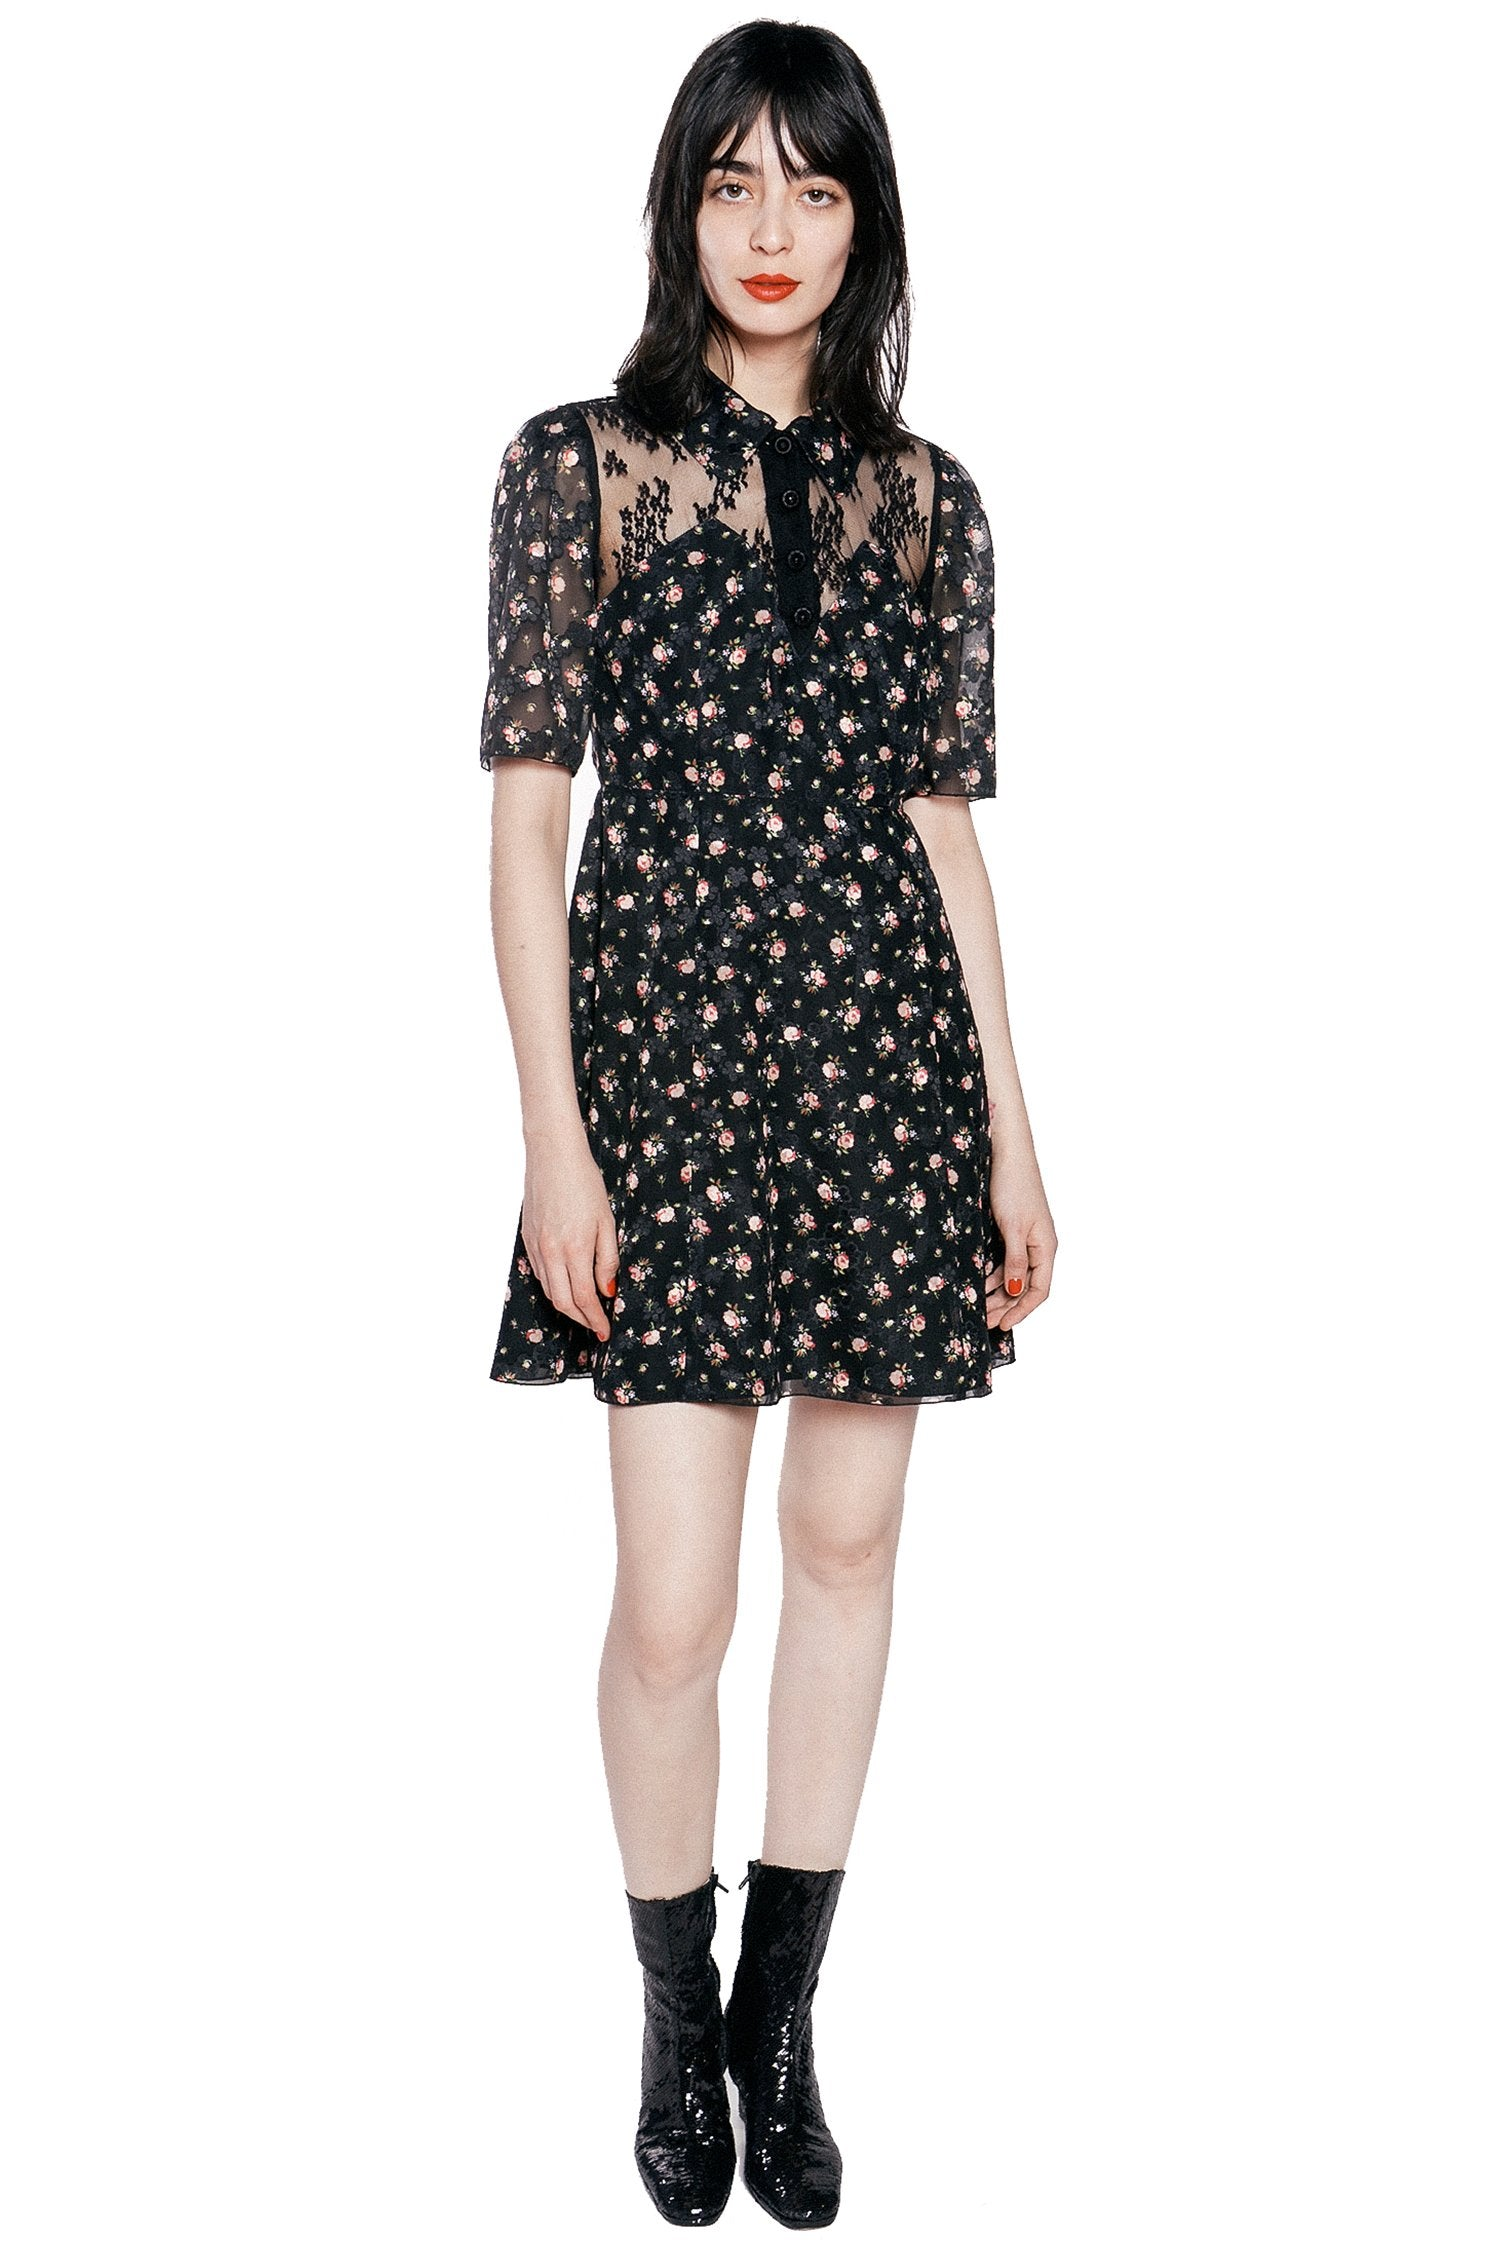 Blooming Buds Clipped Jacquard & Lace Dress - Anna Sui